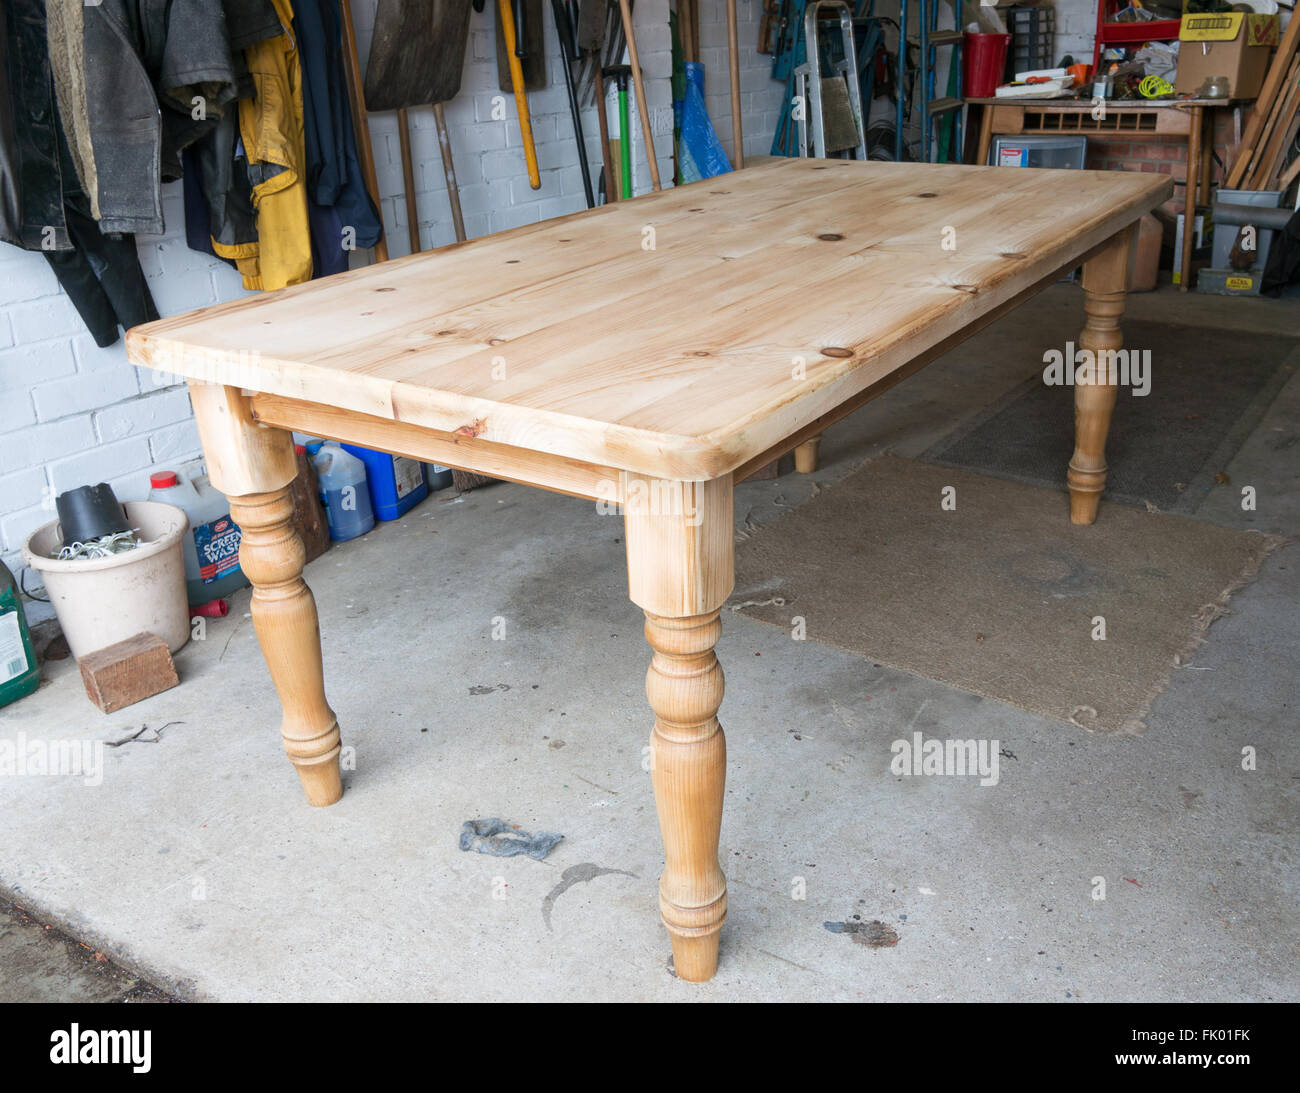 A pine dining table sanded down in the process of restoration - Stock Image